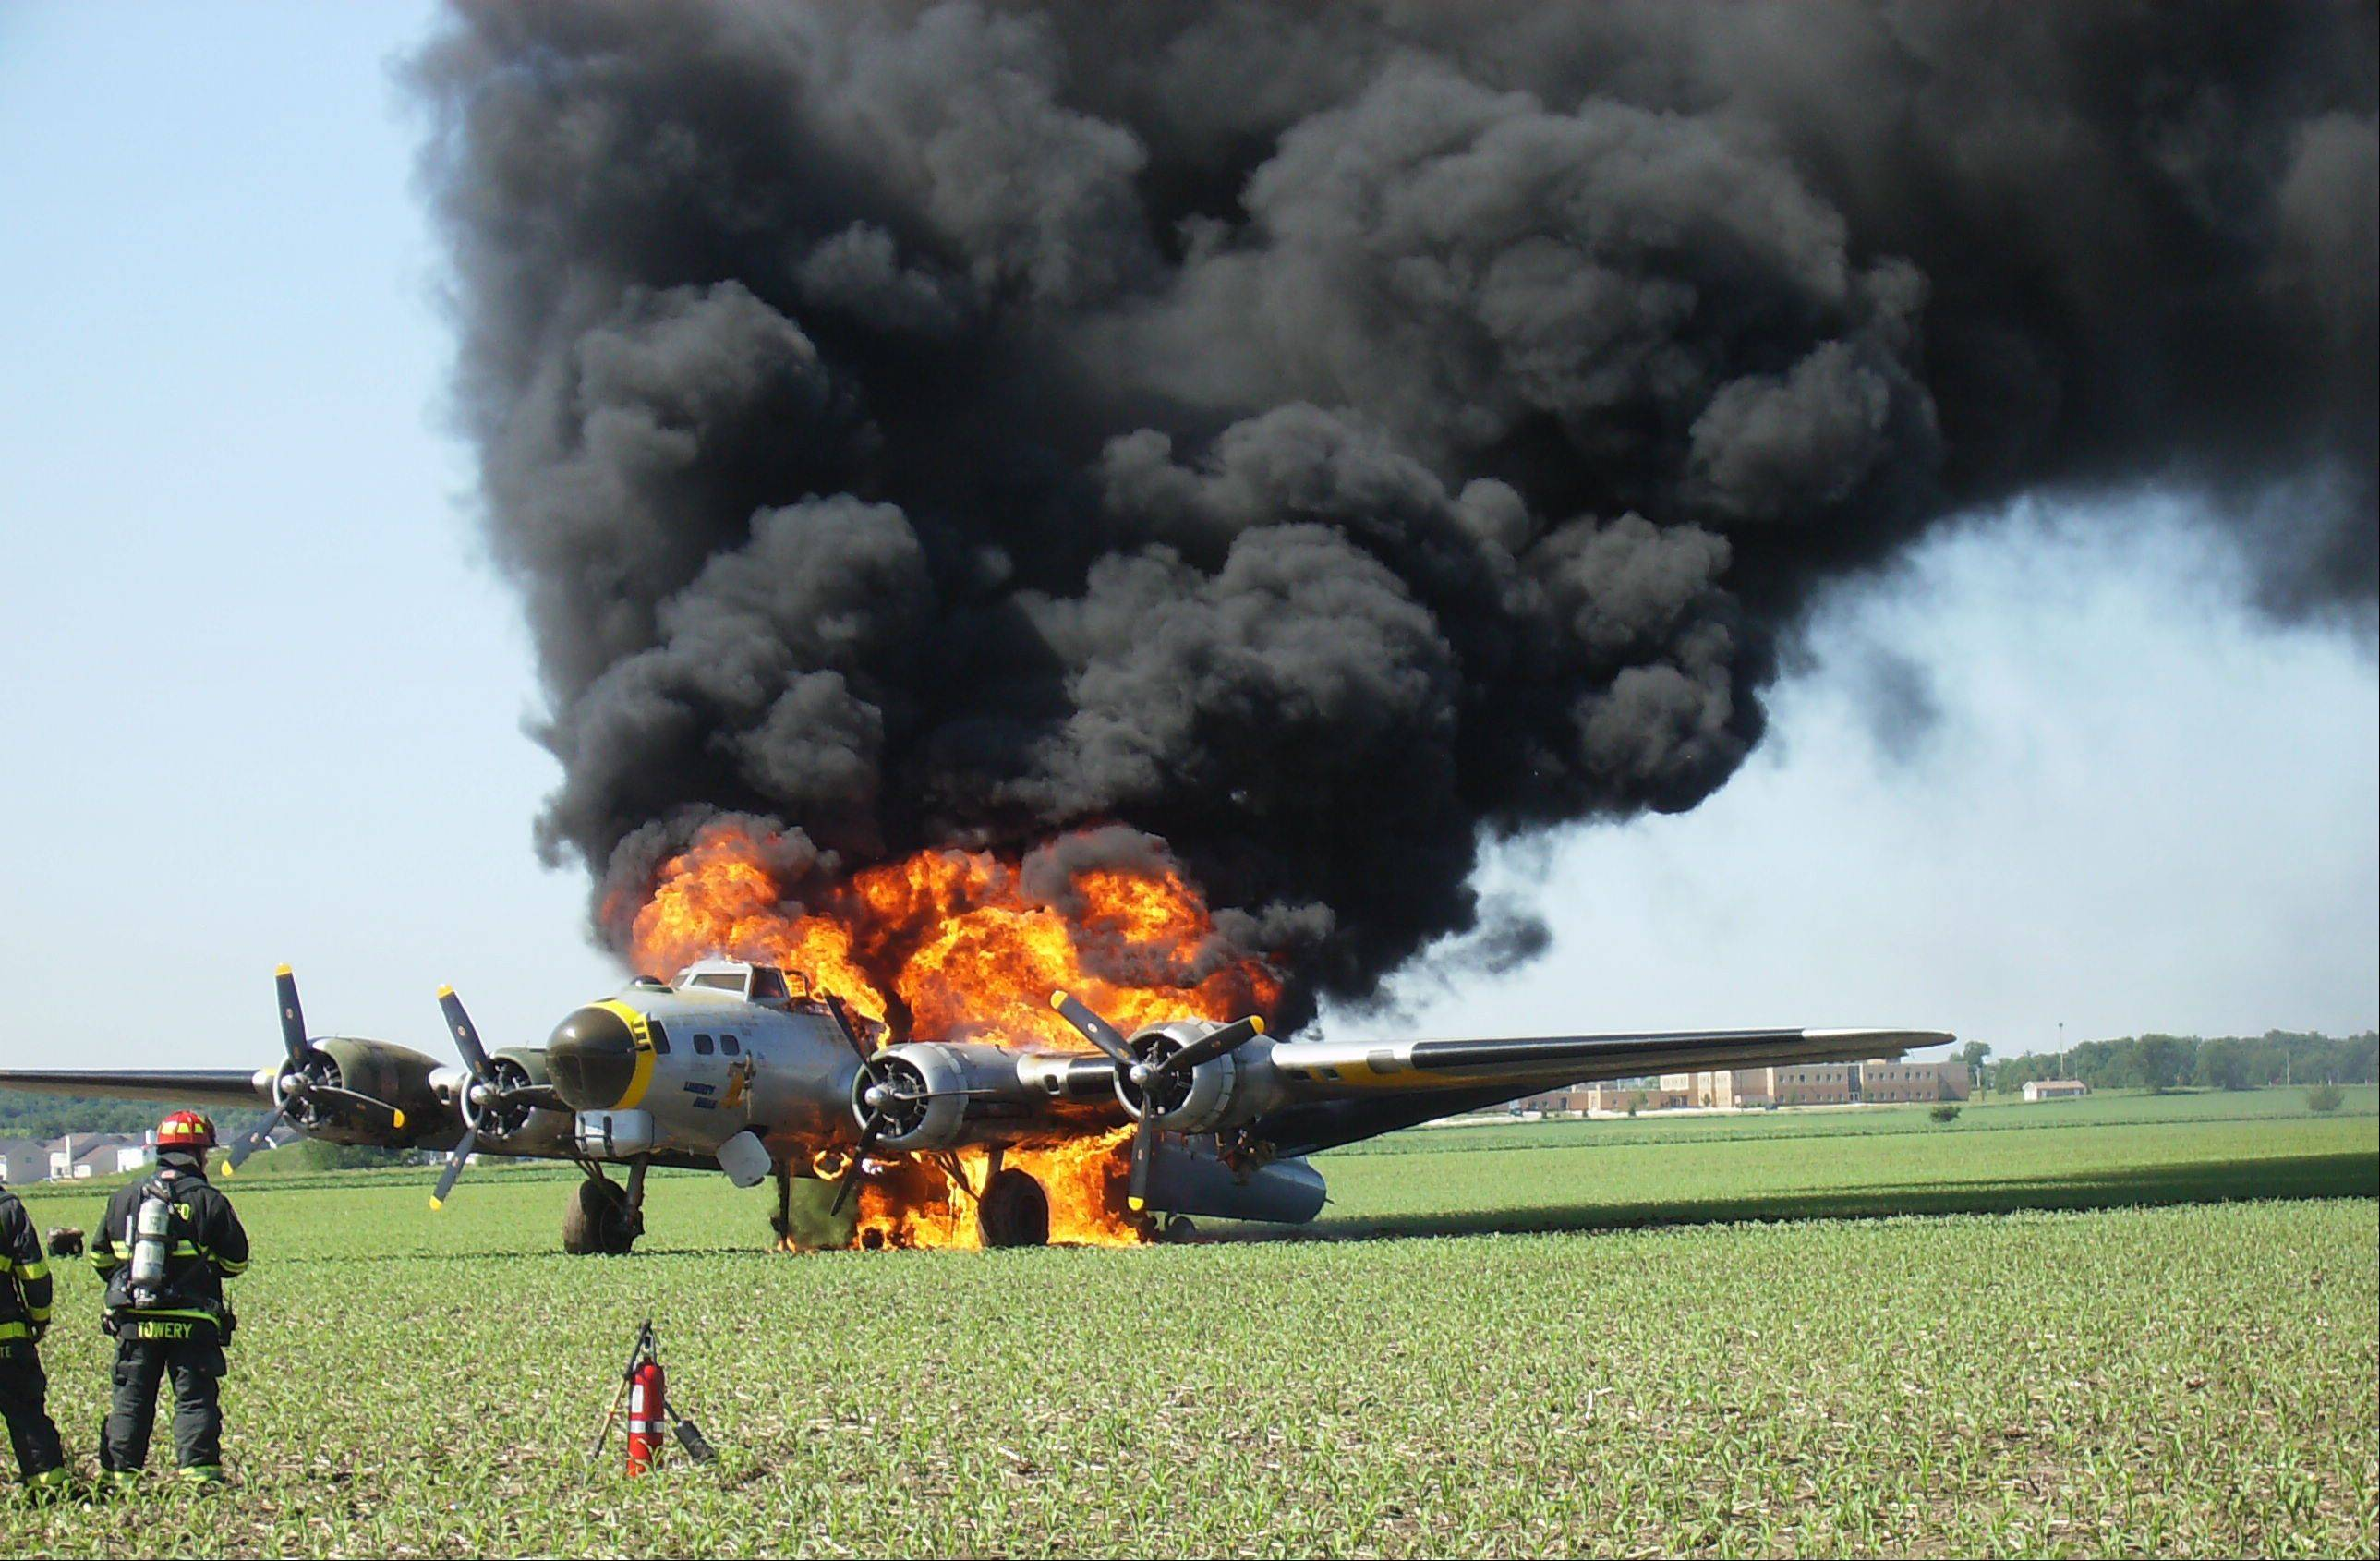 The World War II-era Liberty Belle B-17 burns June 13 after making an emergency landing in Oswego. The National Transportation Safety Board released a preliminary report about the accident Thursday, but the initial findings don't indicate what may have sparked the small fire that apparently began shortly after the plane took off from Aurora Municipal Airport.